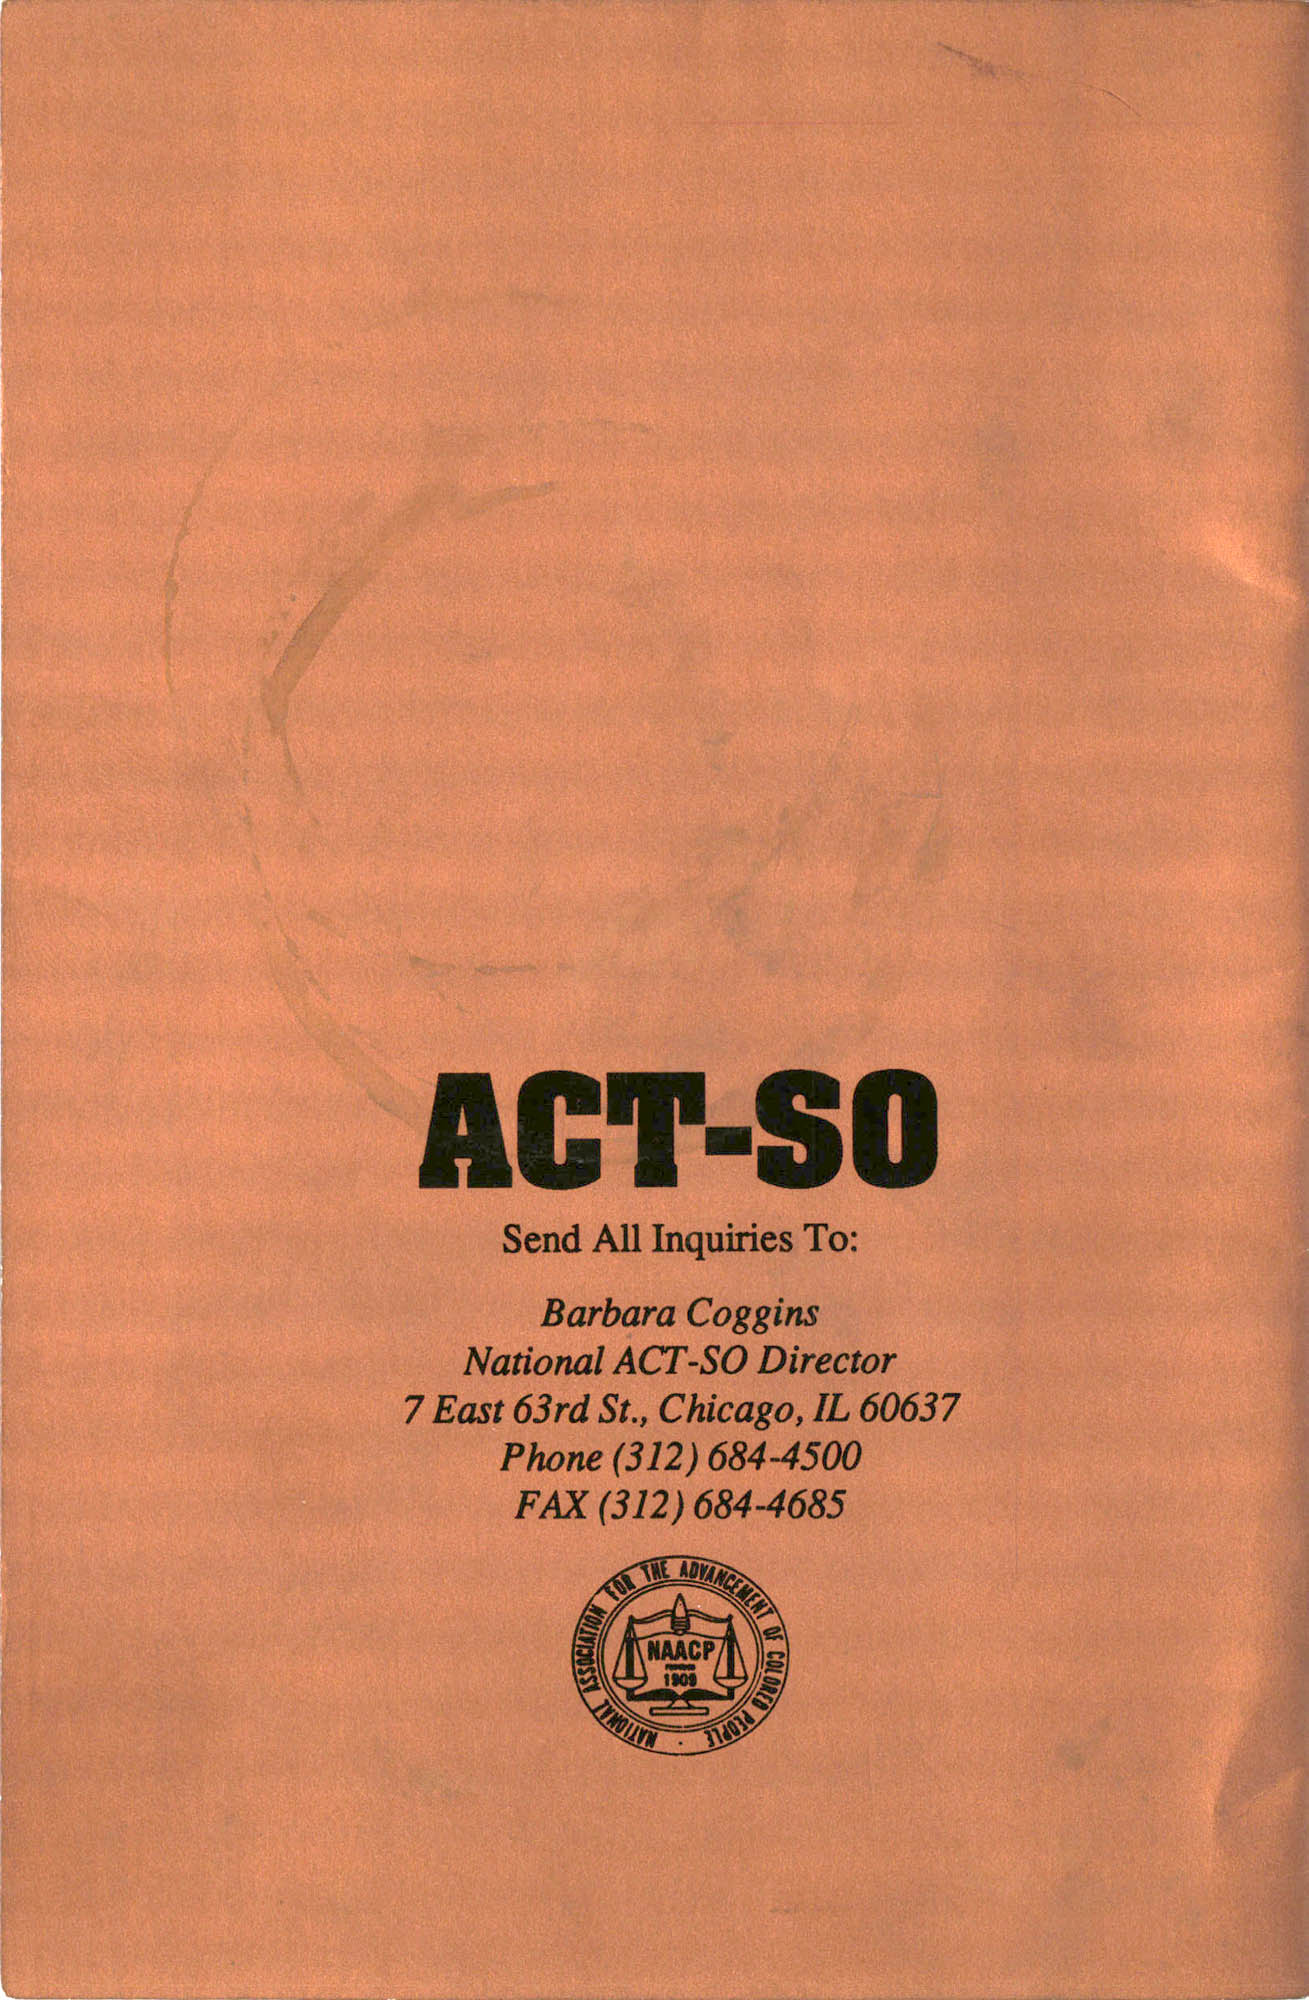 Brochure, ACT-SO Program, NAACP, 1992, Back Cover